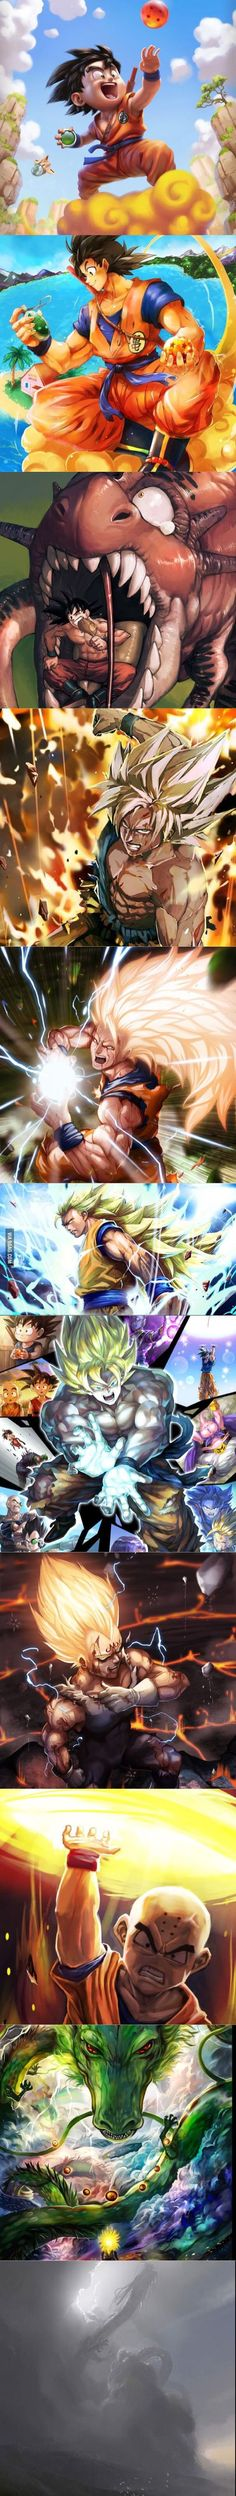 Beautiful DBZ artwork. Upvote for more! - Visit now for 3D Dragon Ball Z compression shirts now on sale! #dragonball #dbz #dragonballsuper